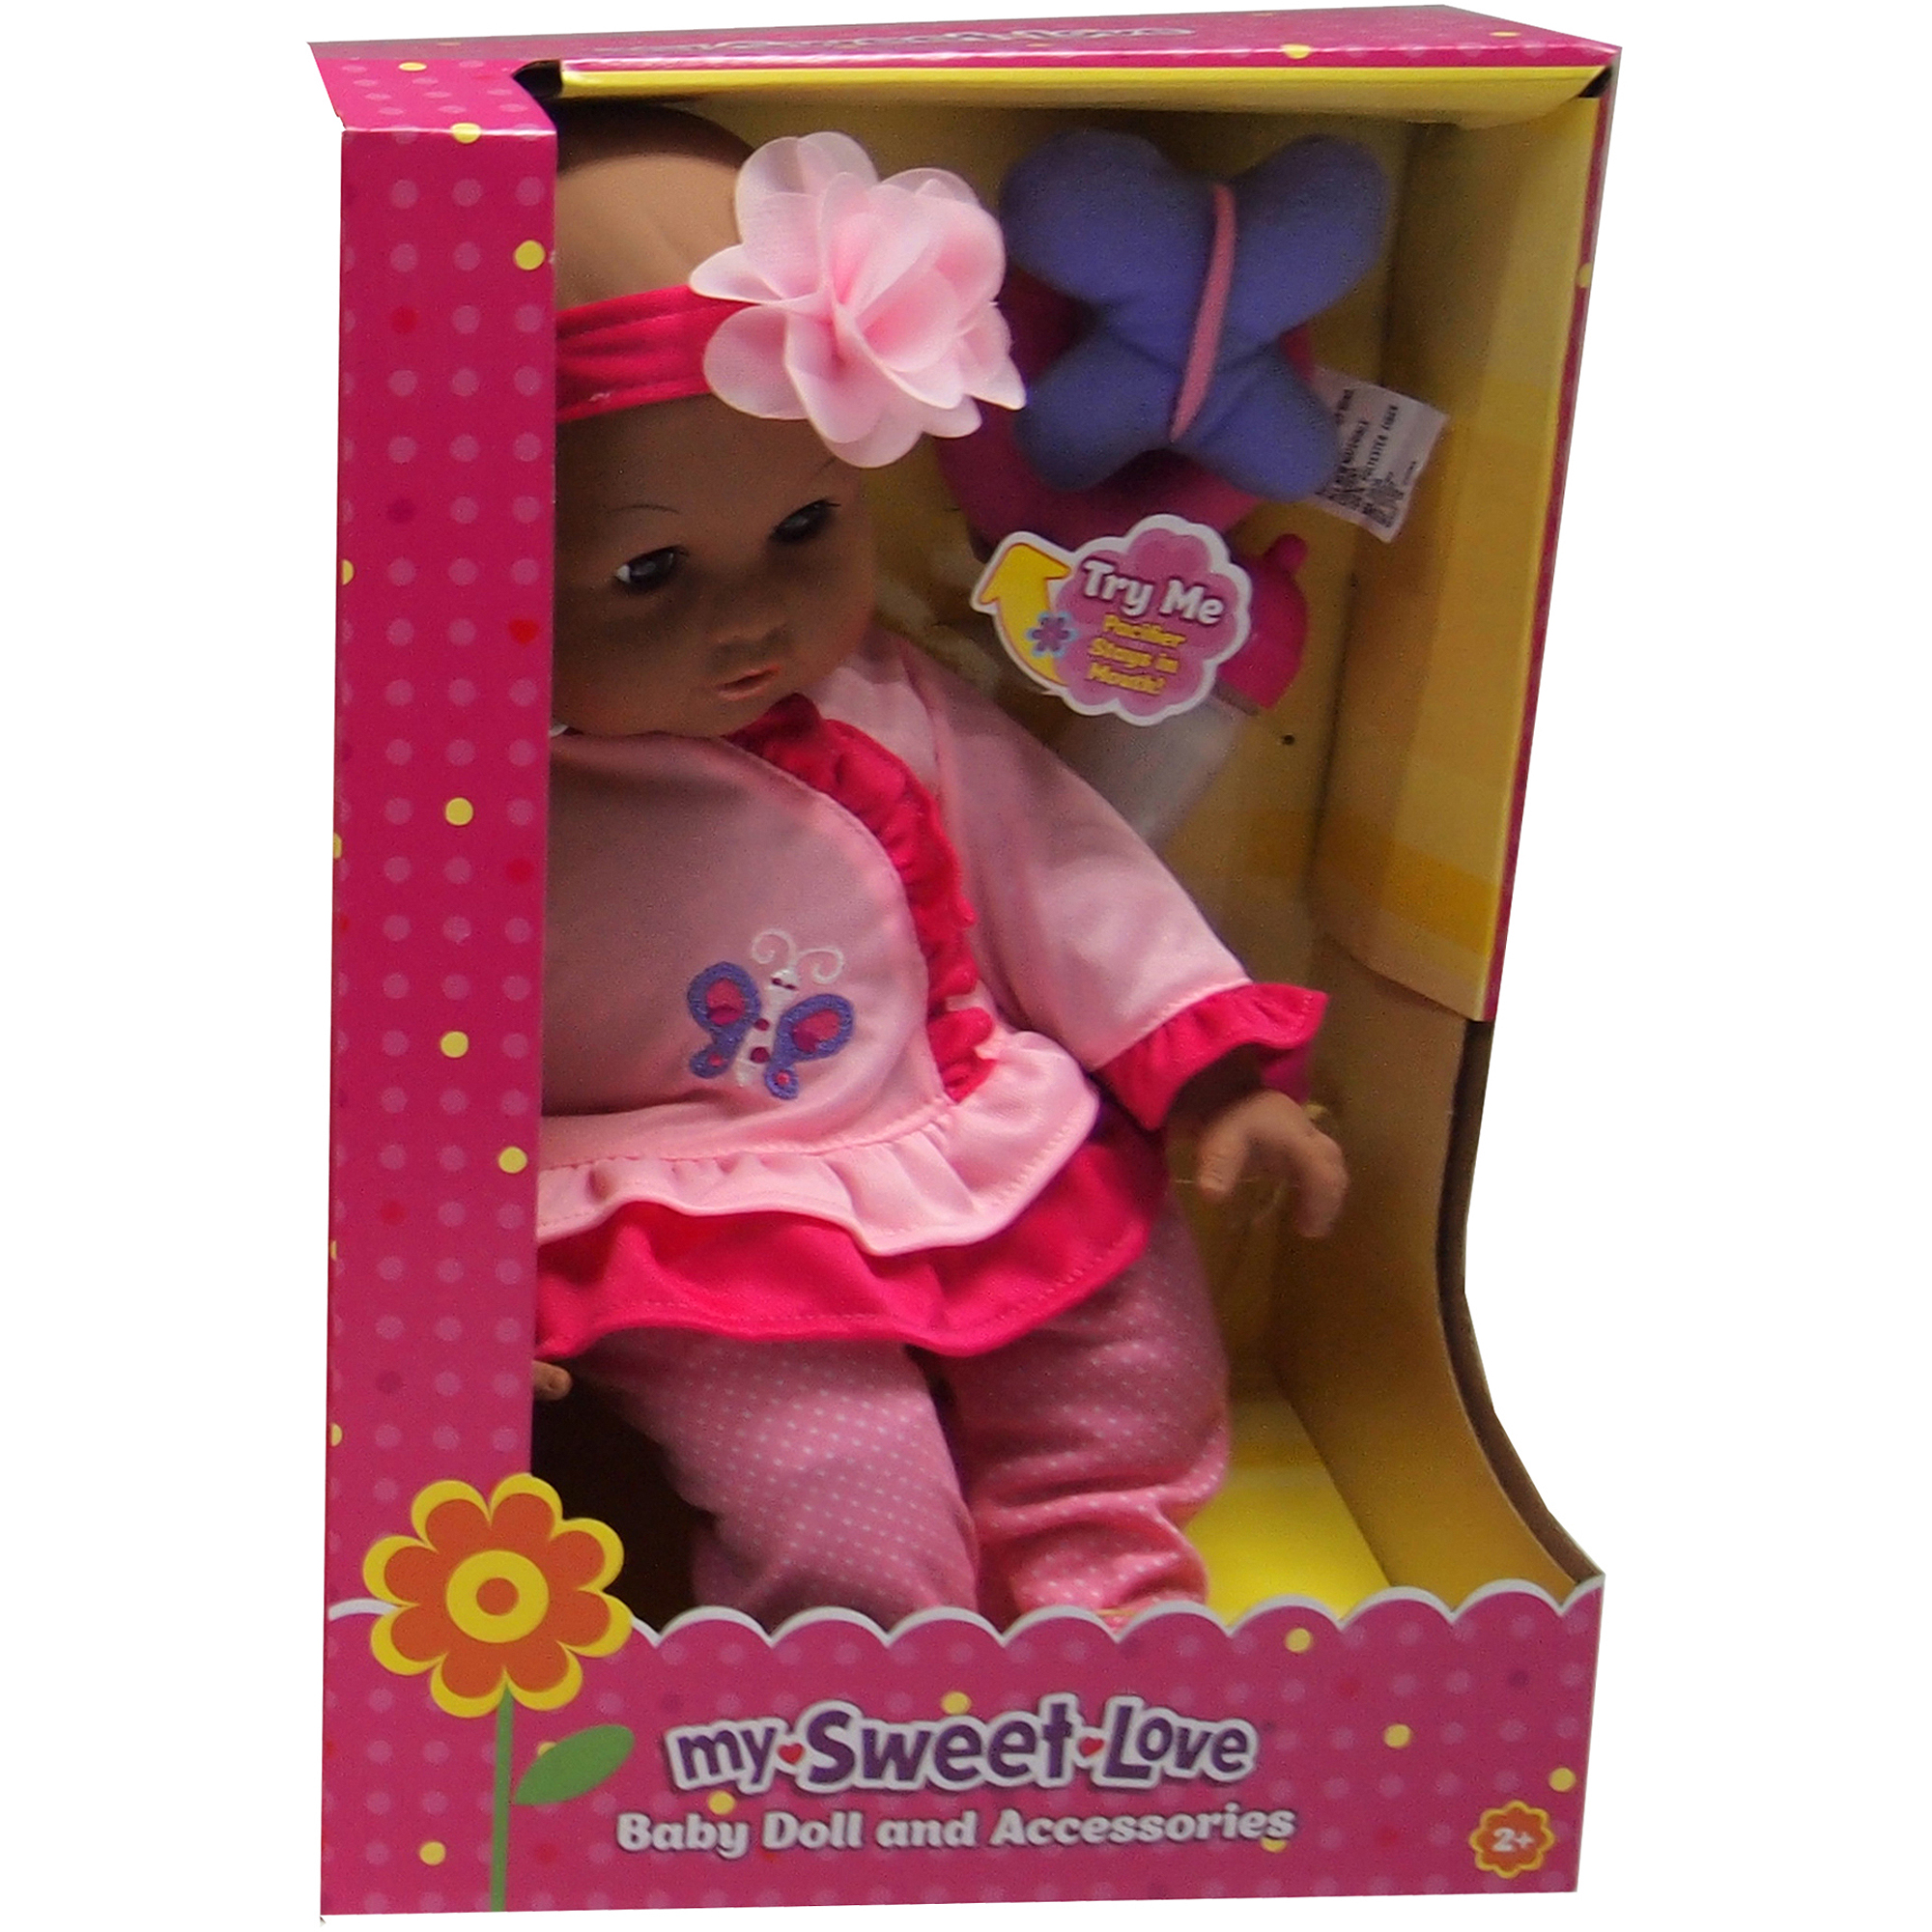 My Sweet Love Cuddly Baby Doll Assorted Colors May Vary